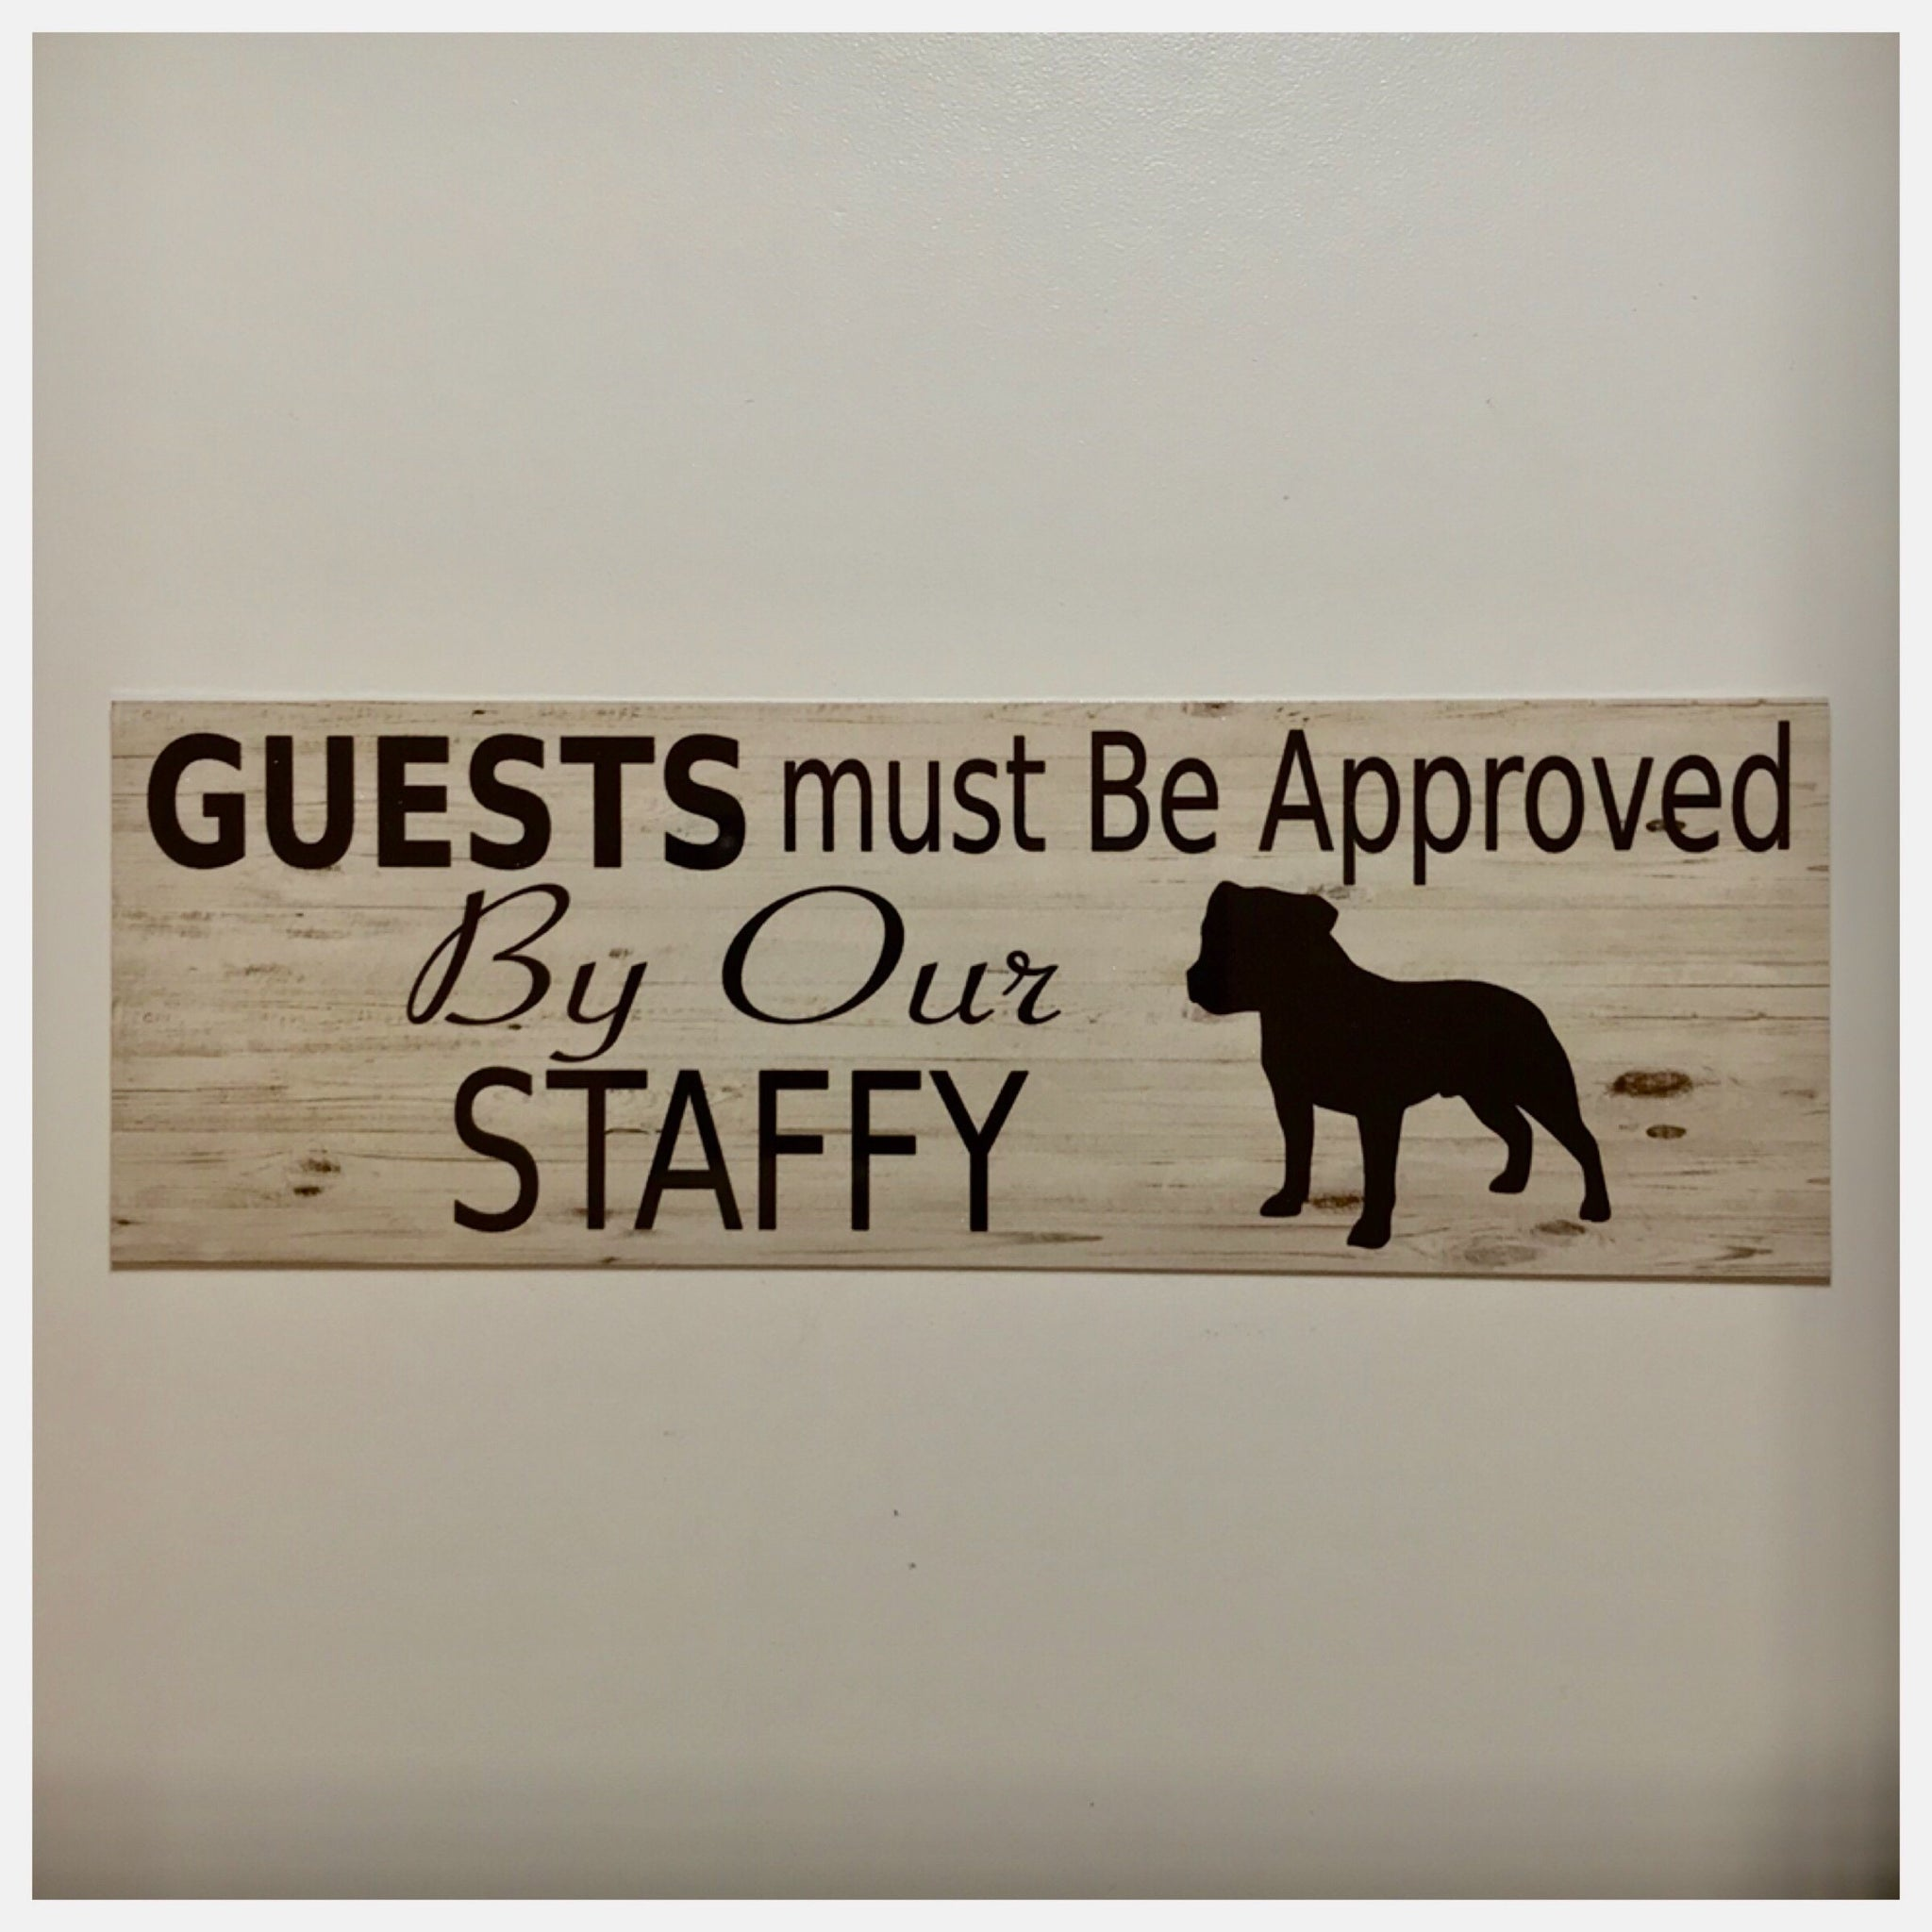 Staffy Staffdshire Dog Guests Must Be Approved By Our Sign - The Renmy Store